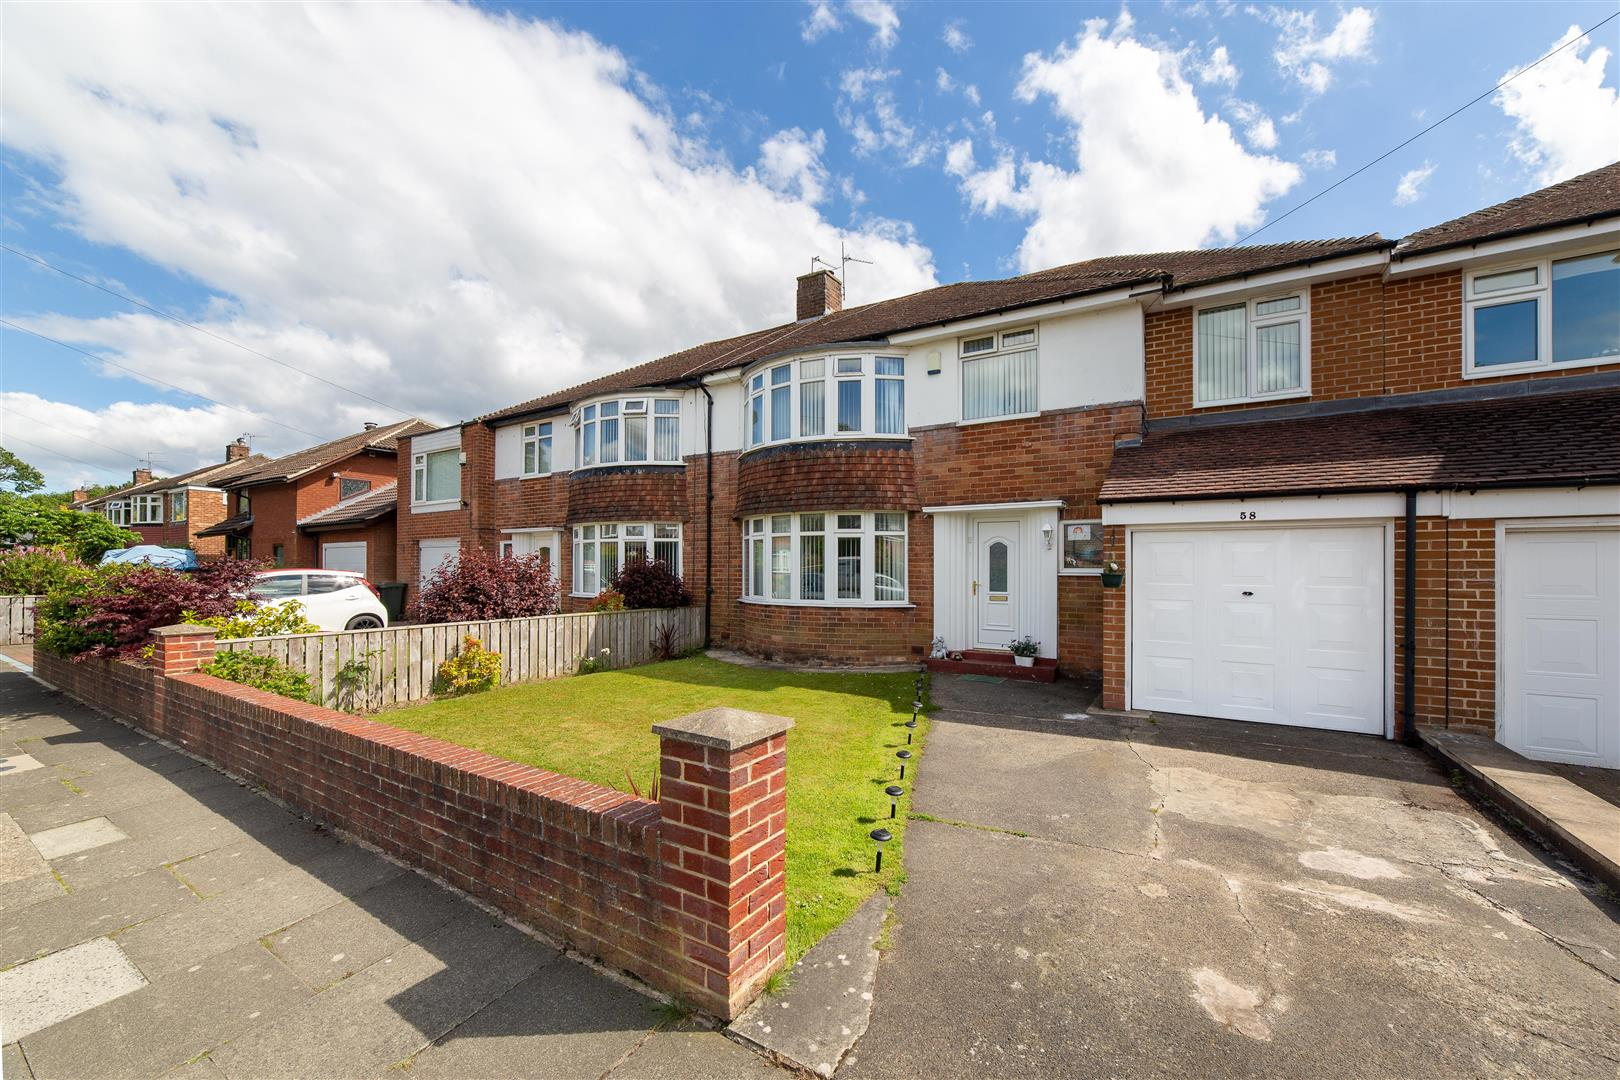 4 bed semi-detached house for sale in Gosforth, NE3 5PY  - Property Image 1